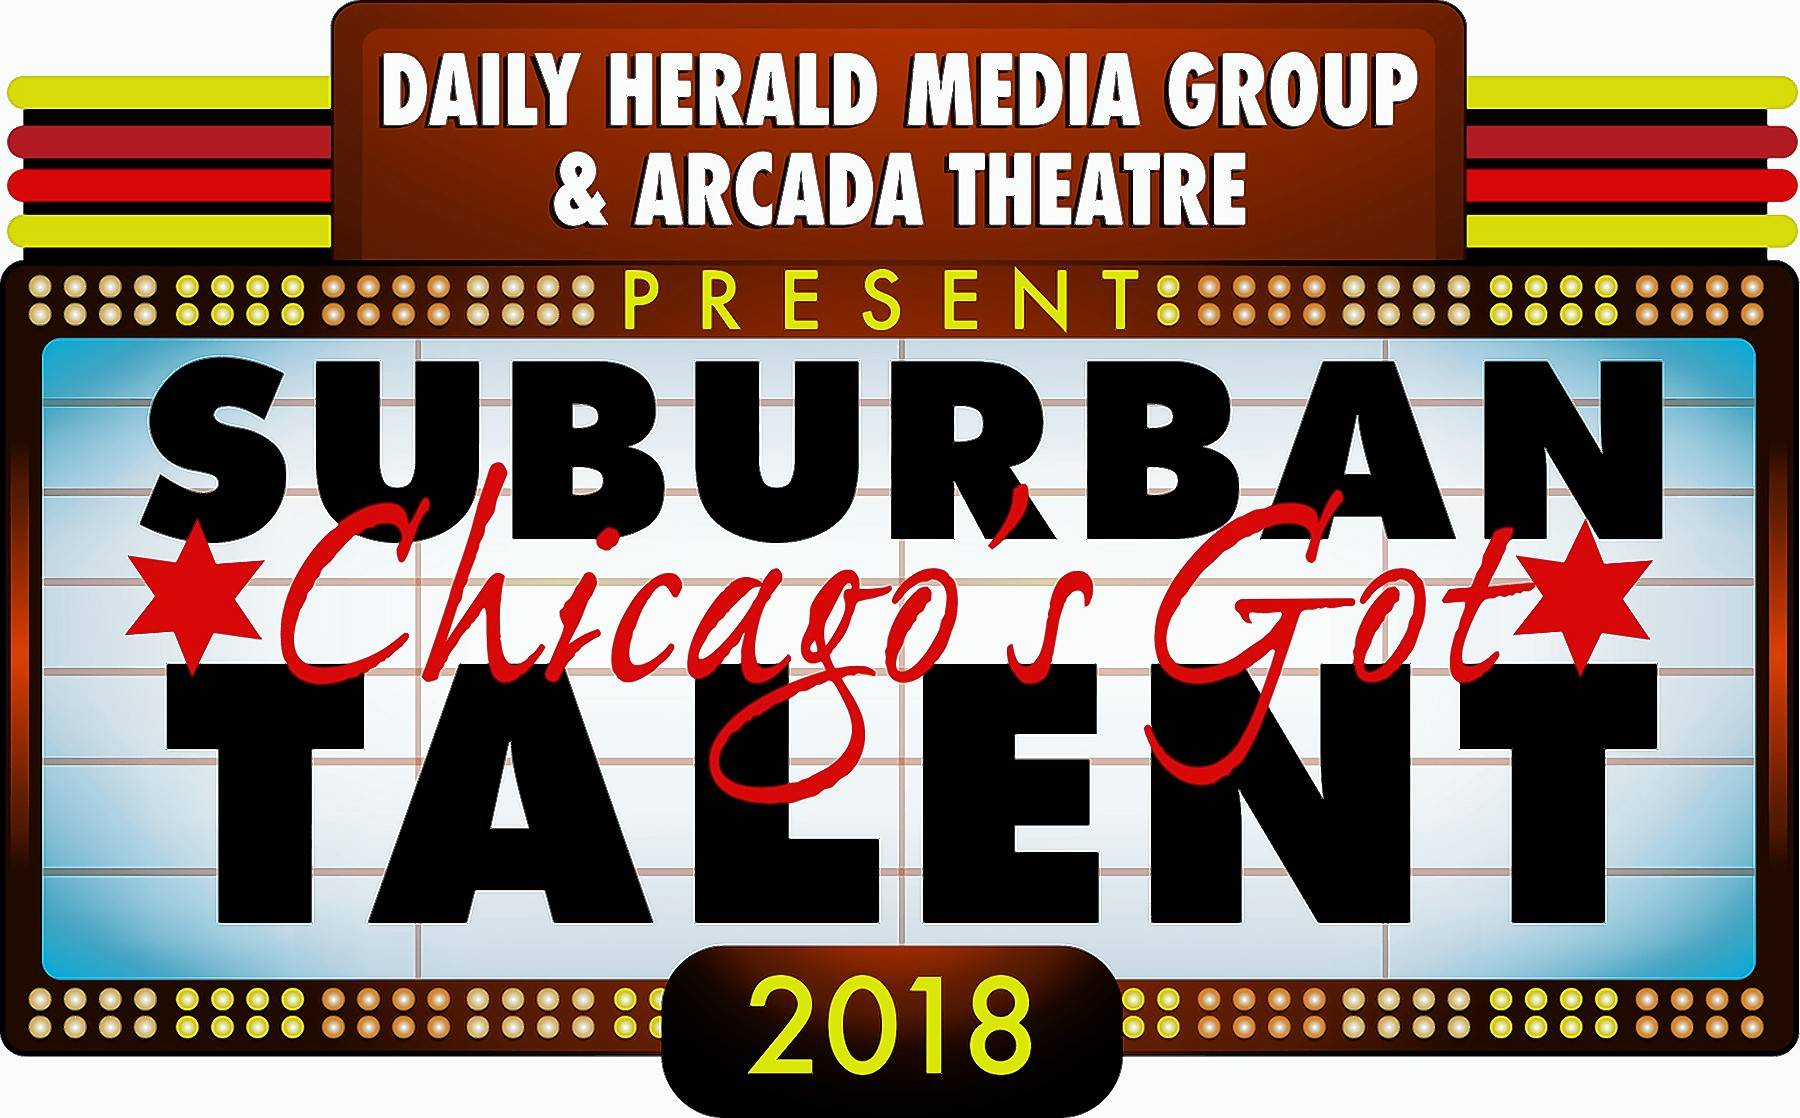 10 finalists advance in Suburban Chicago's Got Talent